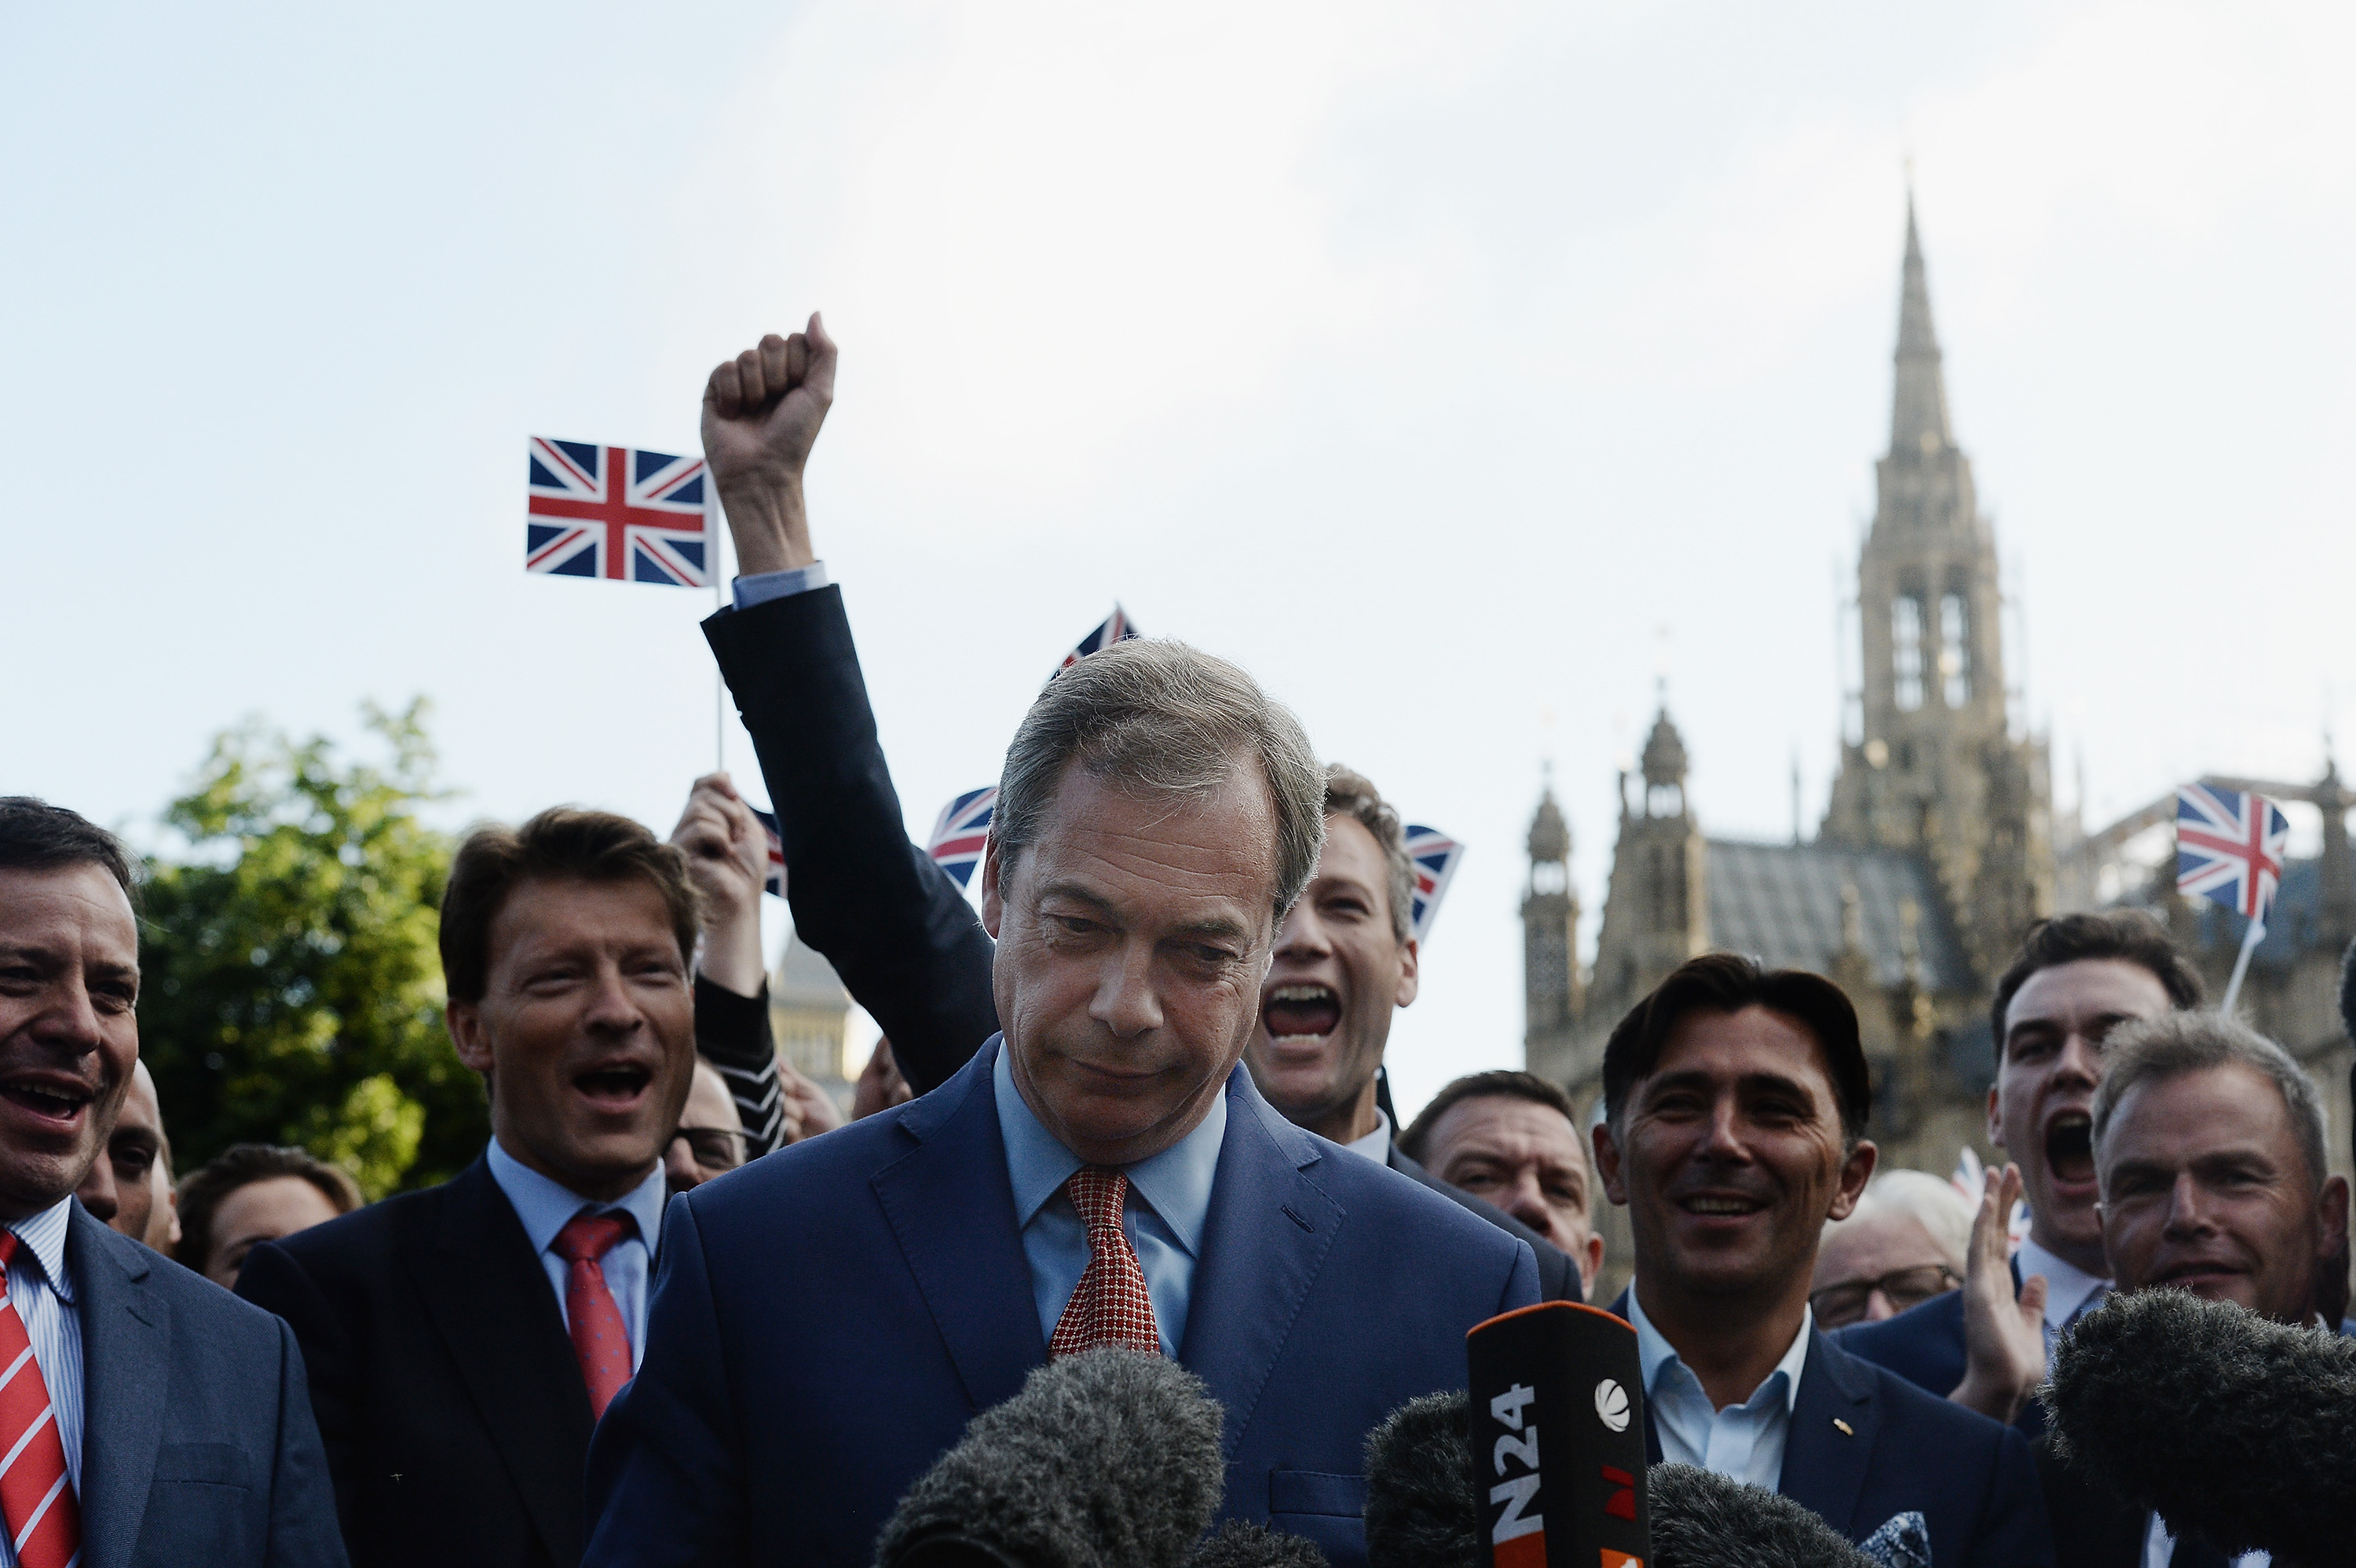 LONDON, ENGLAND - JUNE 24: Leader of UKIP and Vote Leave campaign Nigel Farage arrives to speak to the assembled media at College Green, Westminster following the results of the EU referendum on June 24, 2016 in London, United Kingdom. The result from the historic EU referendum has now been declared and the United Kingdom has voted to LEAVE the European Union. (Photo by Mary Turner/Getty Images)